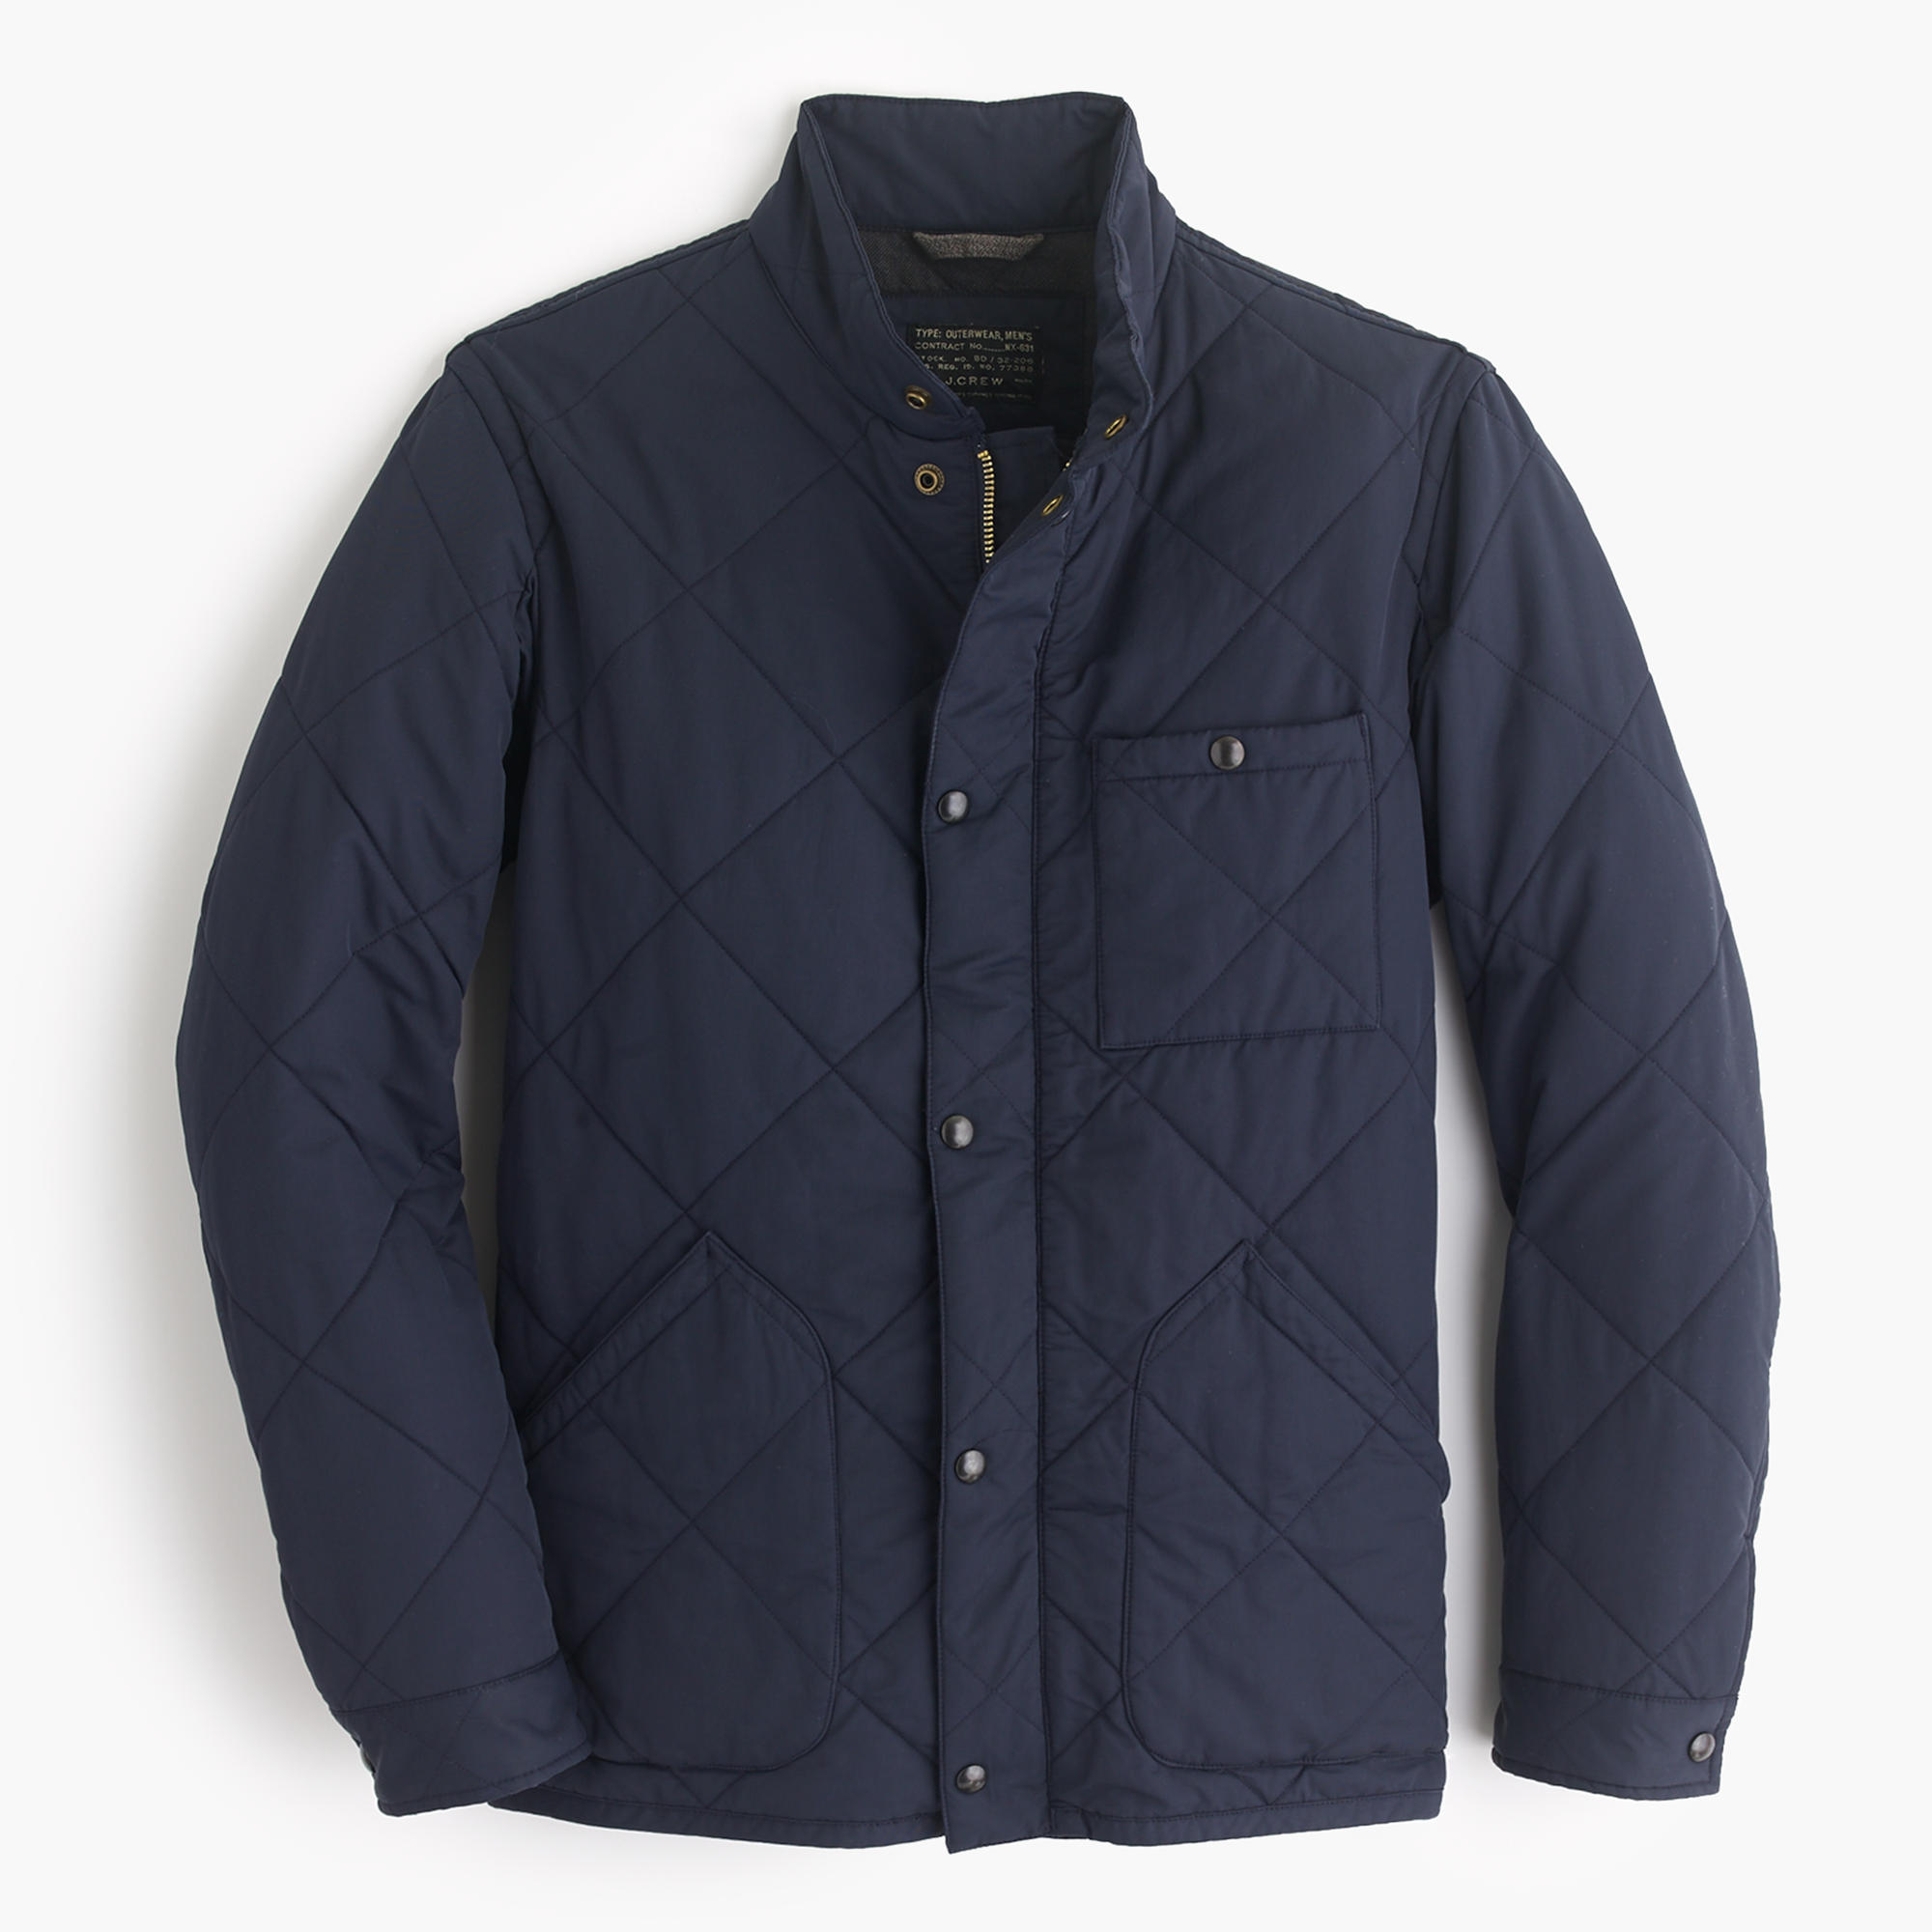 Sussex Quilted Jacket : Men's Coats & Jackets | J.Crew : mens navy quilted coat - Adamdwight.com